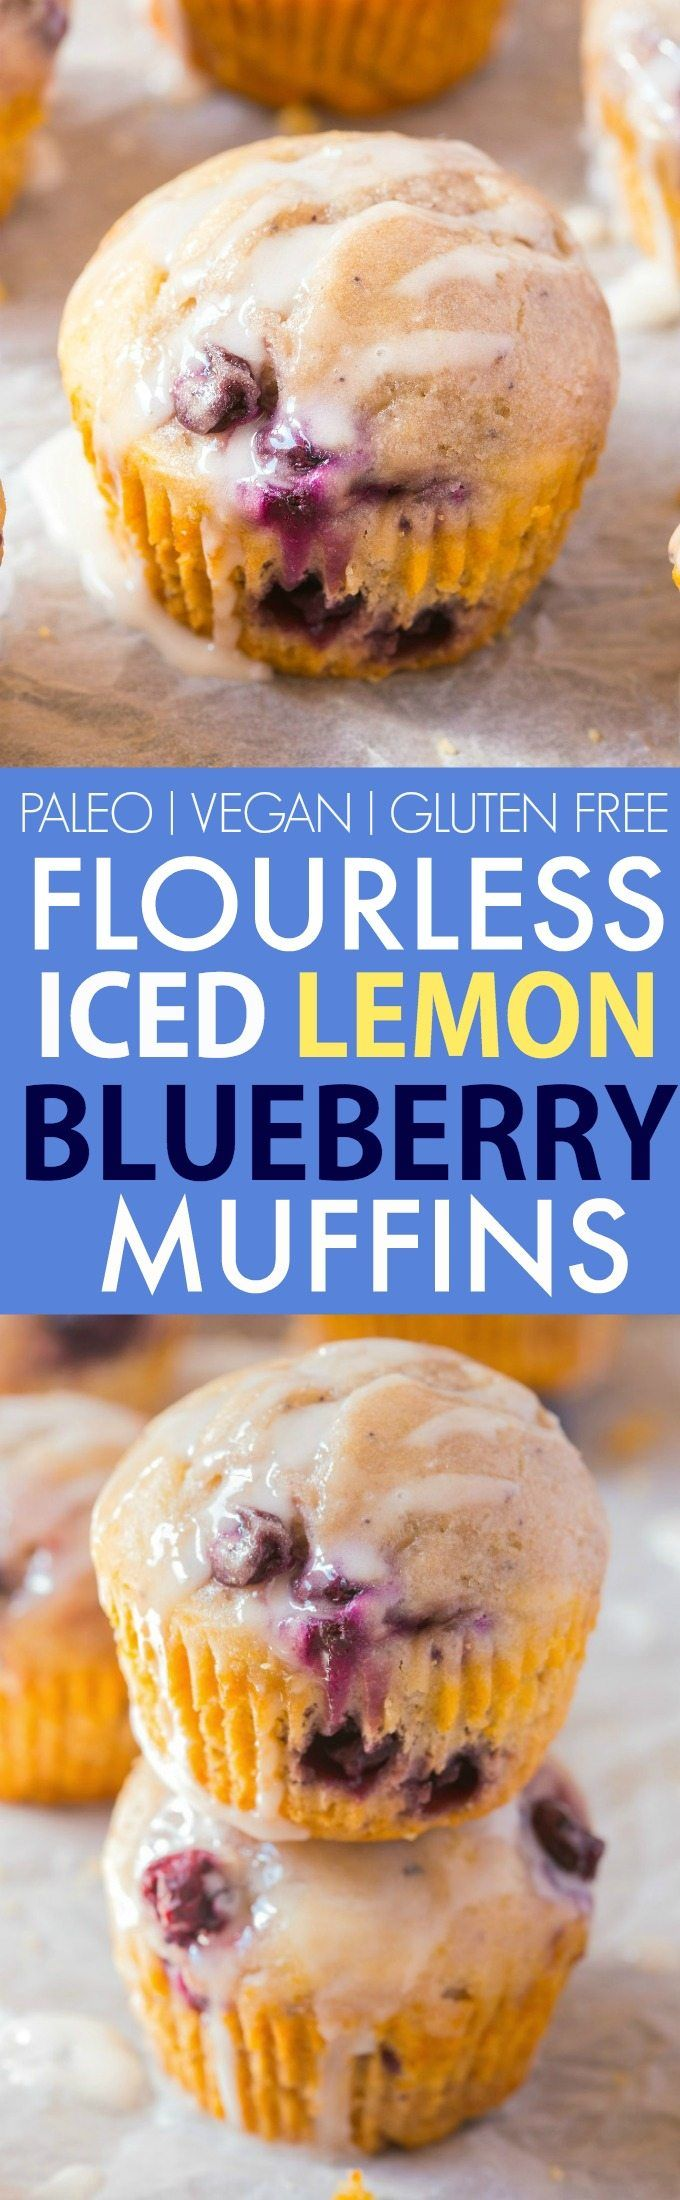 Healthy Flourless Lemon Blueberry Muffins (V, GF, Paleo)- Oil-free and sugar-free muffins which are so light, fluffy and filling, you'd never know! Freezer friendly, protein-packed and suitable for breakfast! {Vegan, gluten free, paleo recipe}- thebigmans